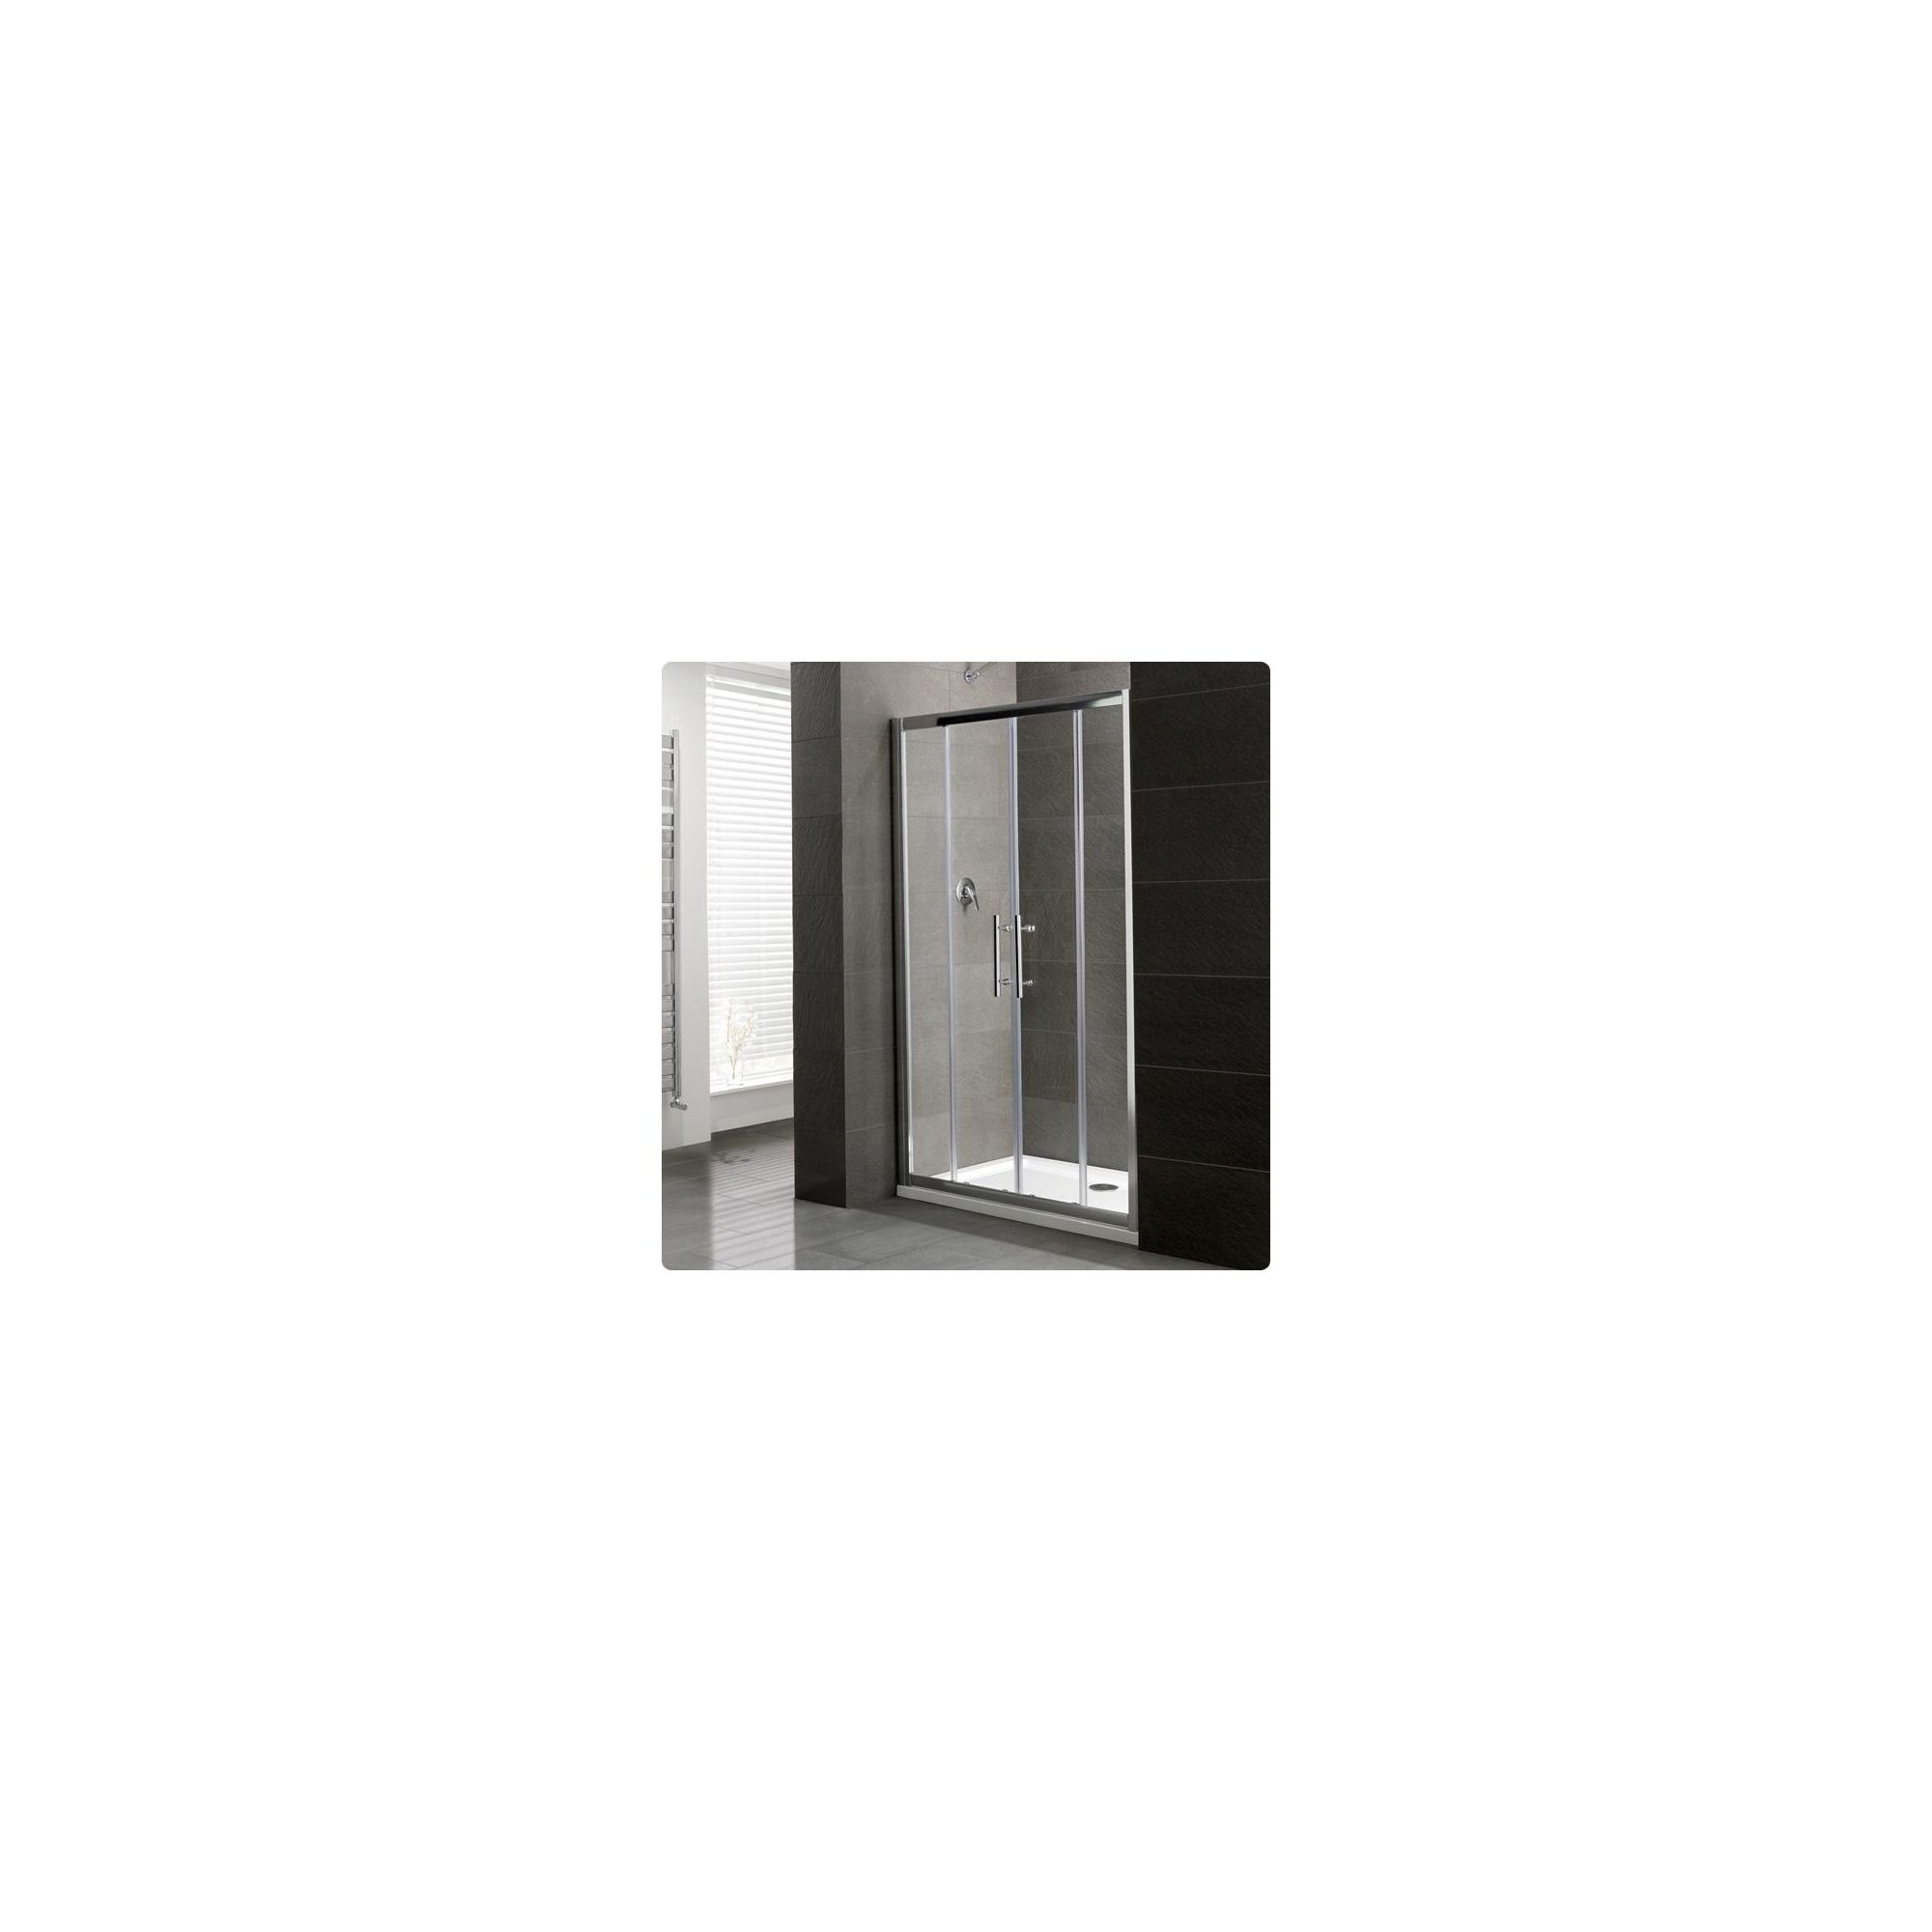 Duchy Select Silver Double Sliding Door Shower Enclosure, 1200mm x 760mm, Standard Tray, 6mm Glass at Tesco Direct